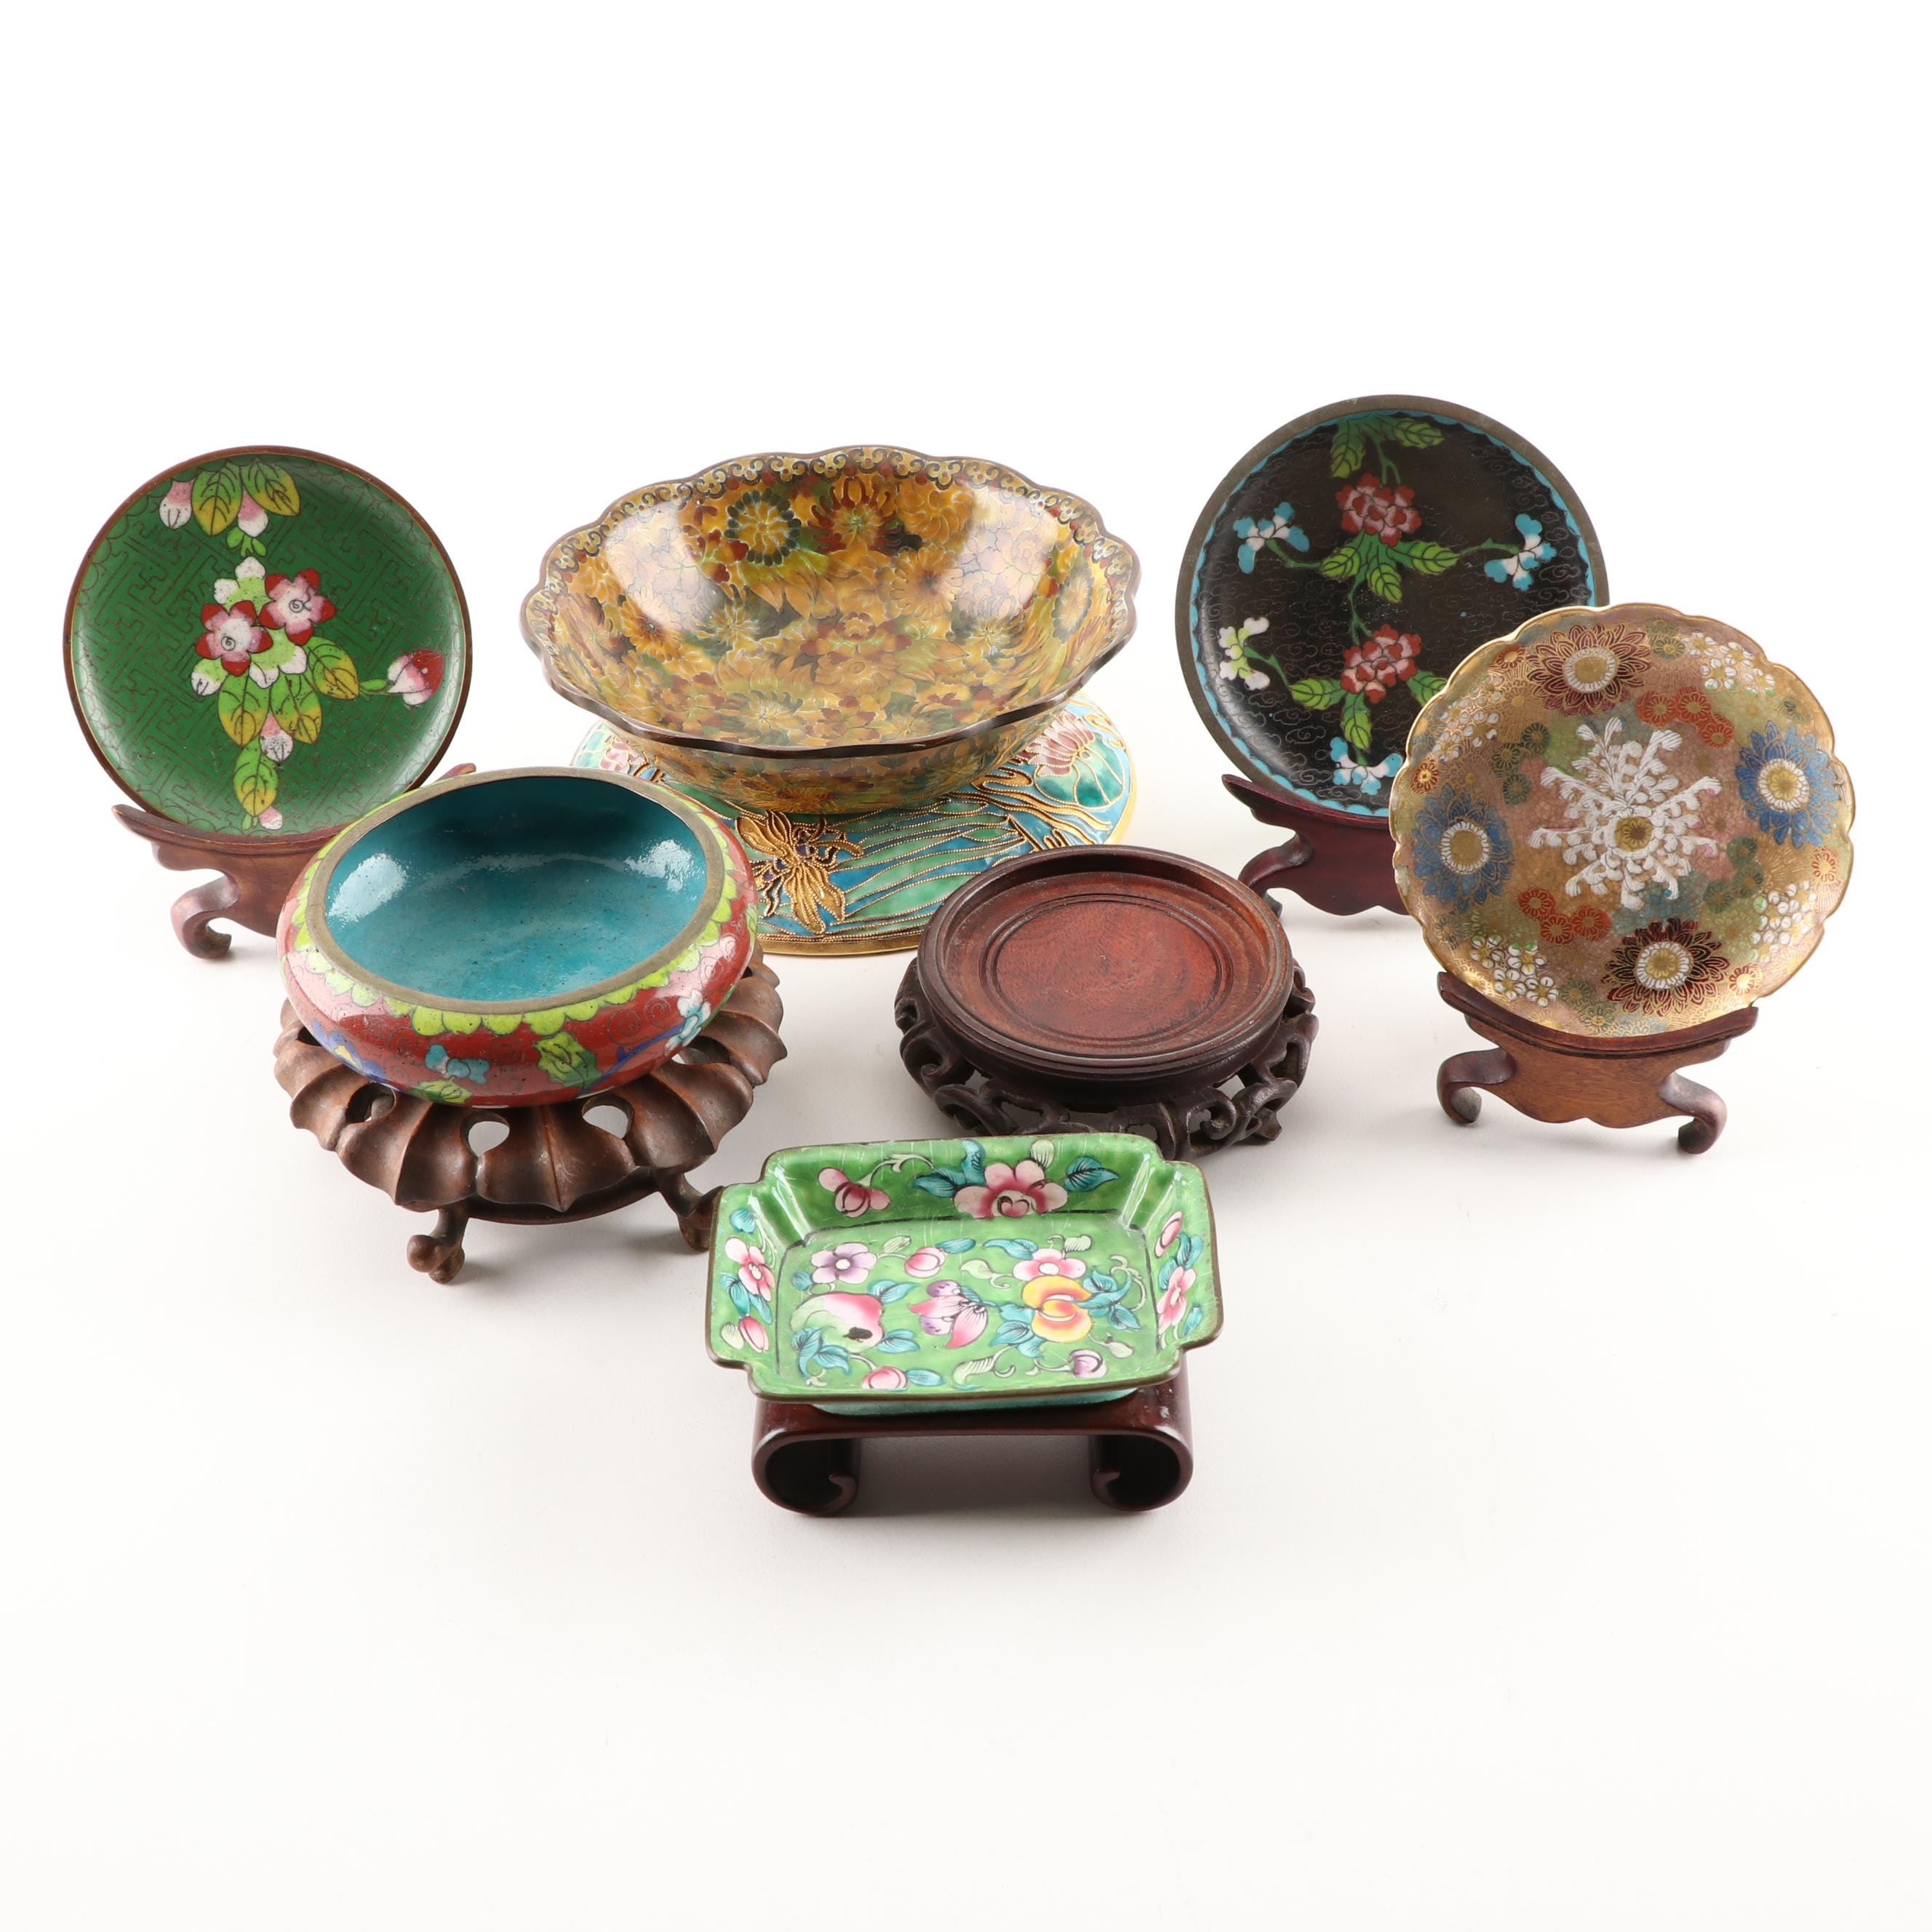 Chinese Cloisonné Bowls with Stands